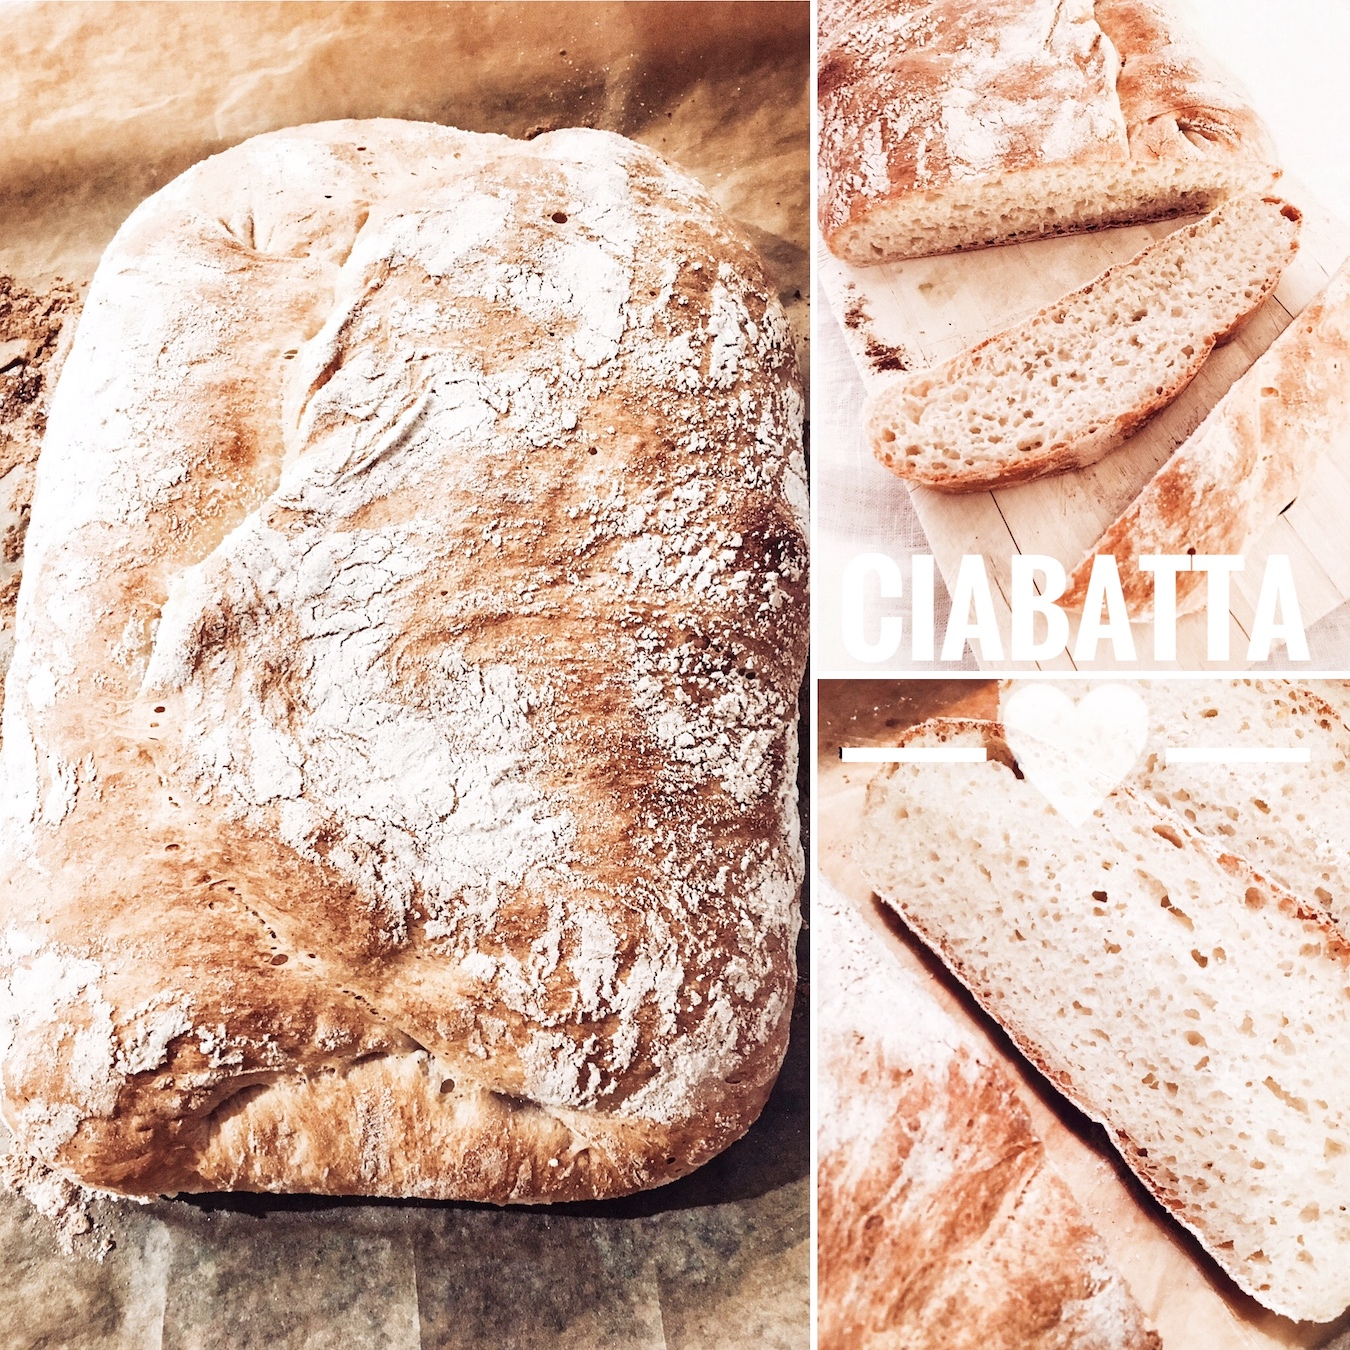 Ciabatta featured